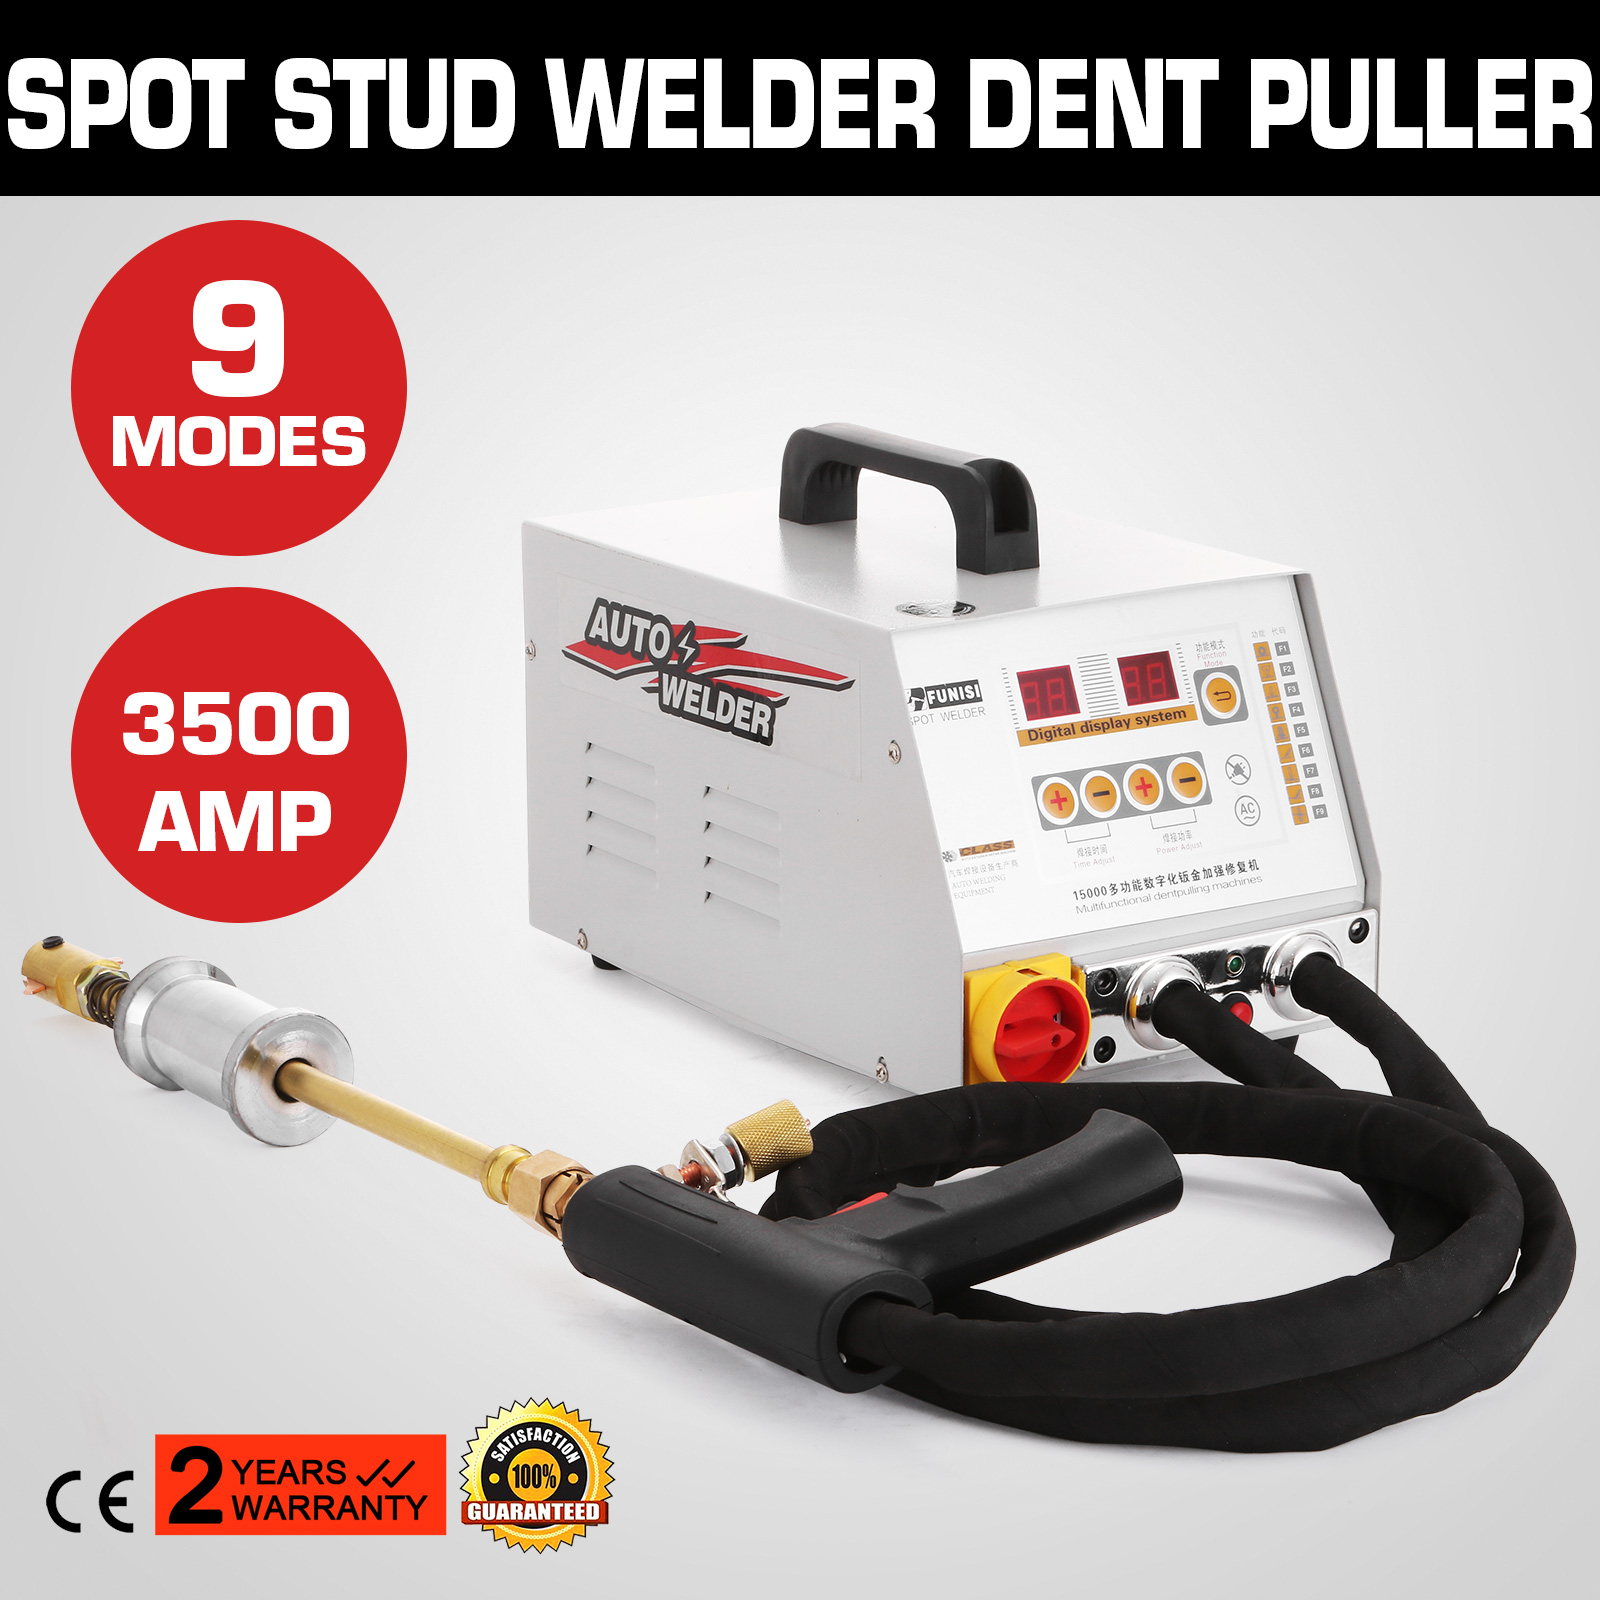 110V 3500 AMP Vehicle Panel Spot Puller Dent Spotter Durable Welder 9 Modes